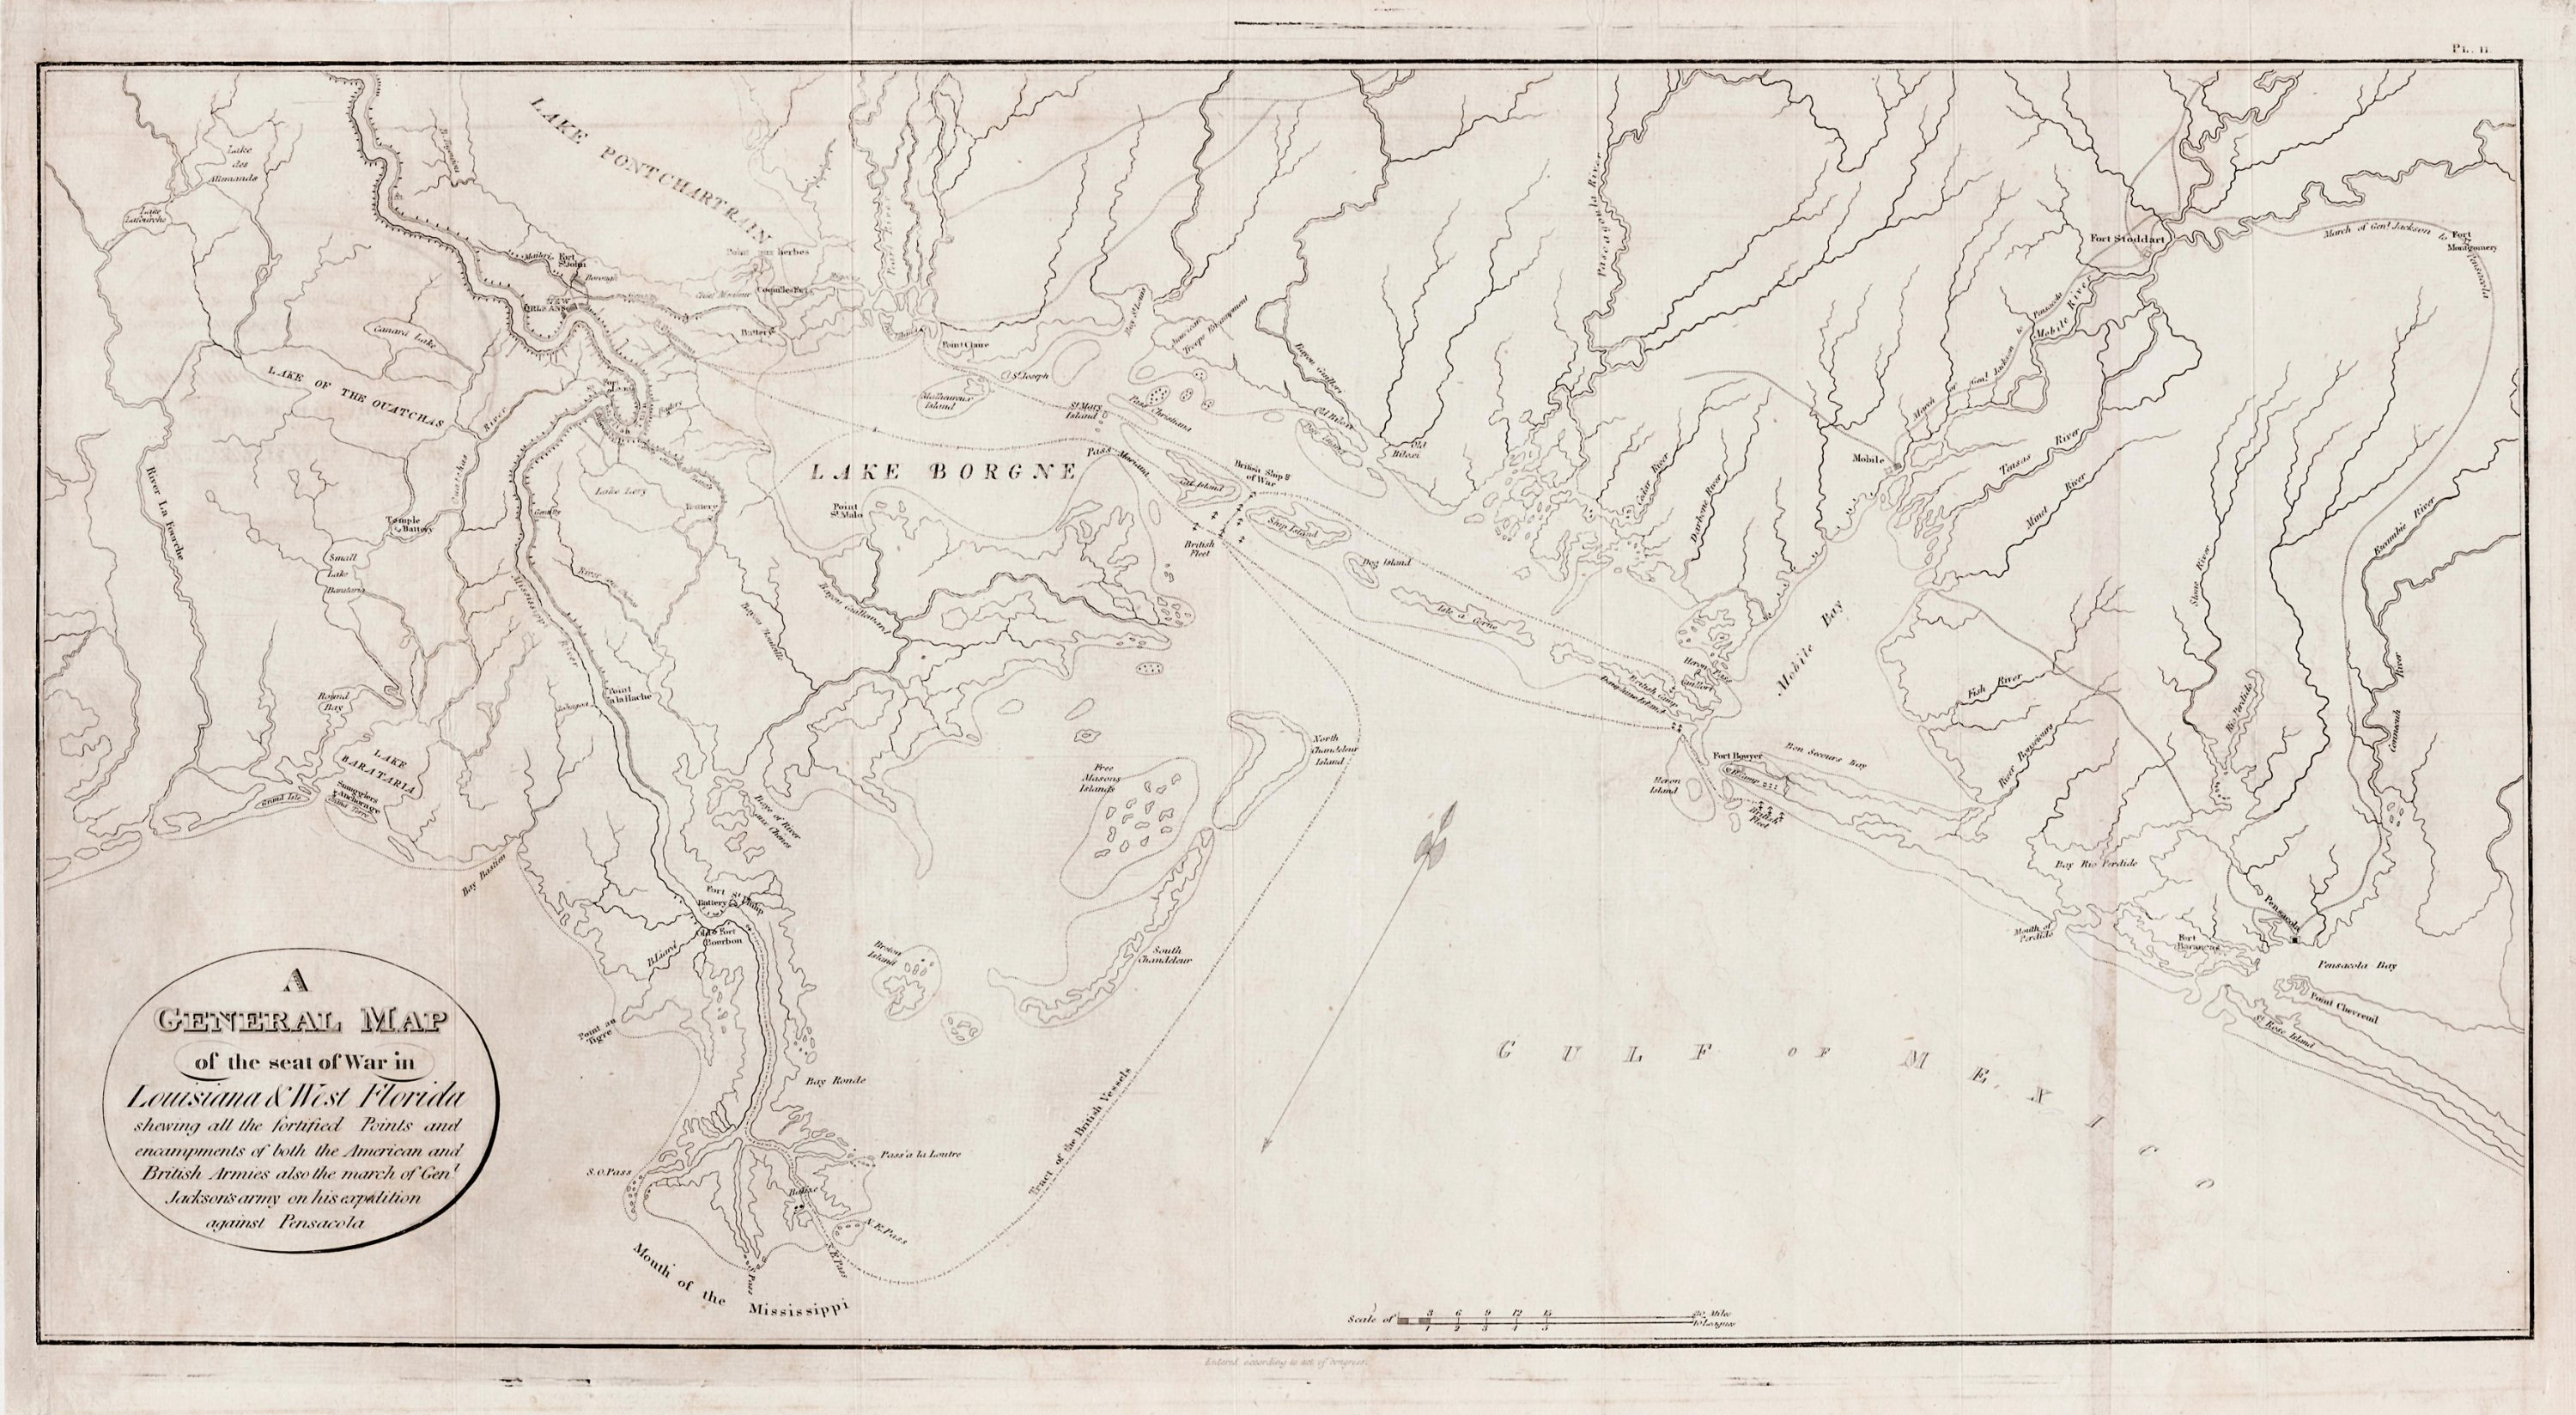 West Florida Map.1816 Map Of The Seat Of War In Louisiana West Florida Rare